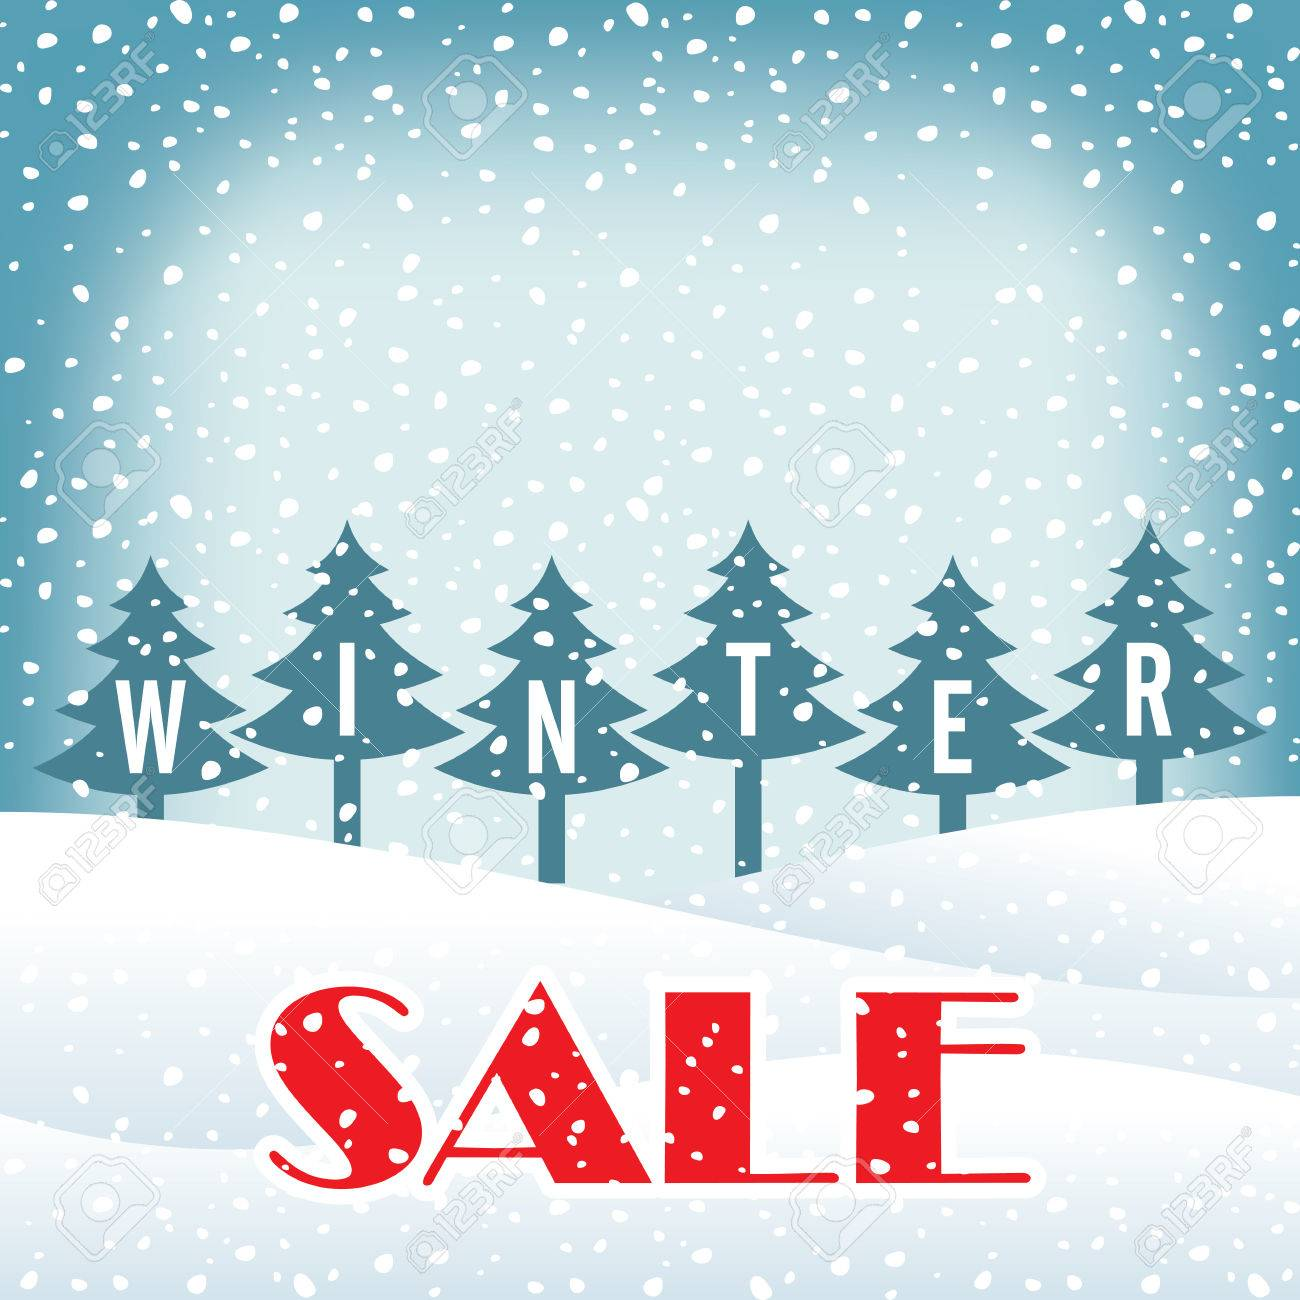 Poster design business - Winter Sale Poster Design Template Or Background Creative Business Promotional Vector Stock Vector